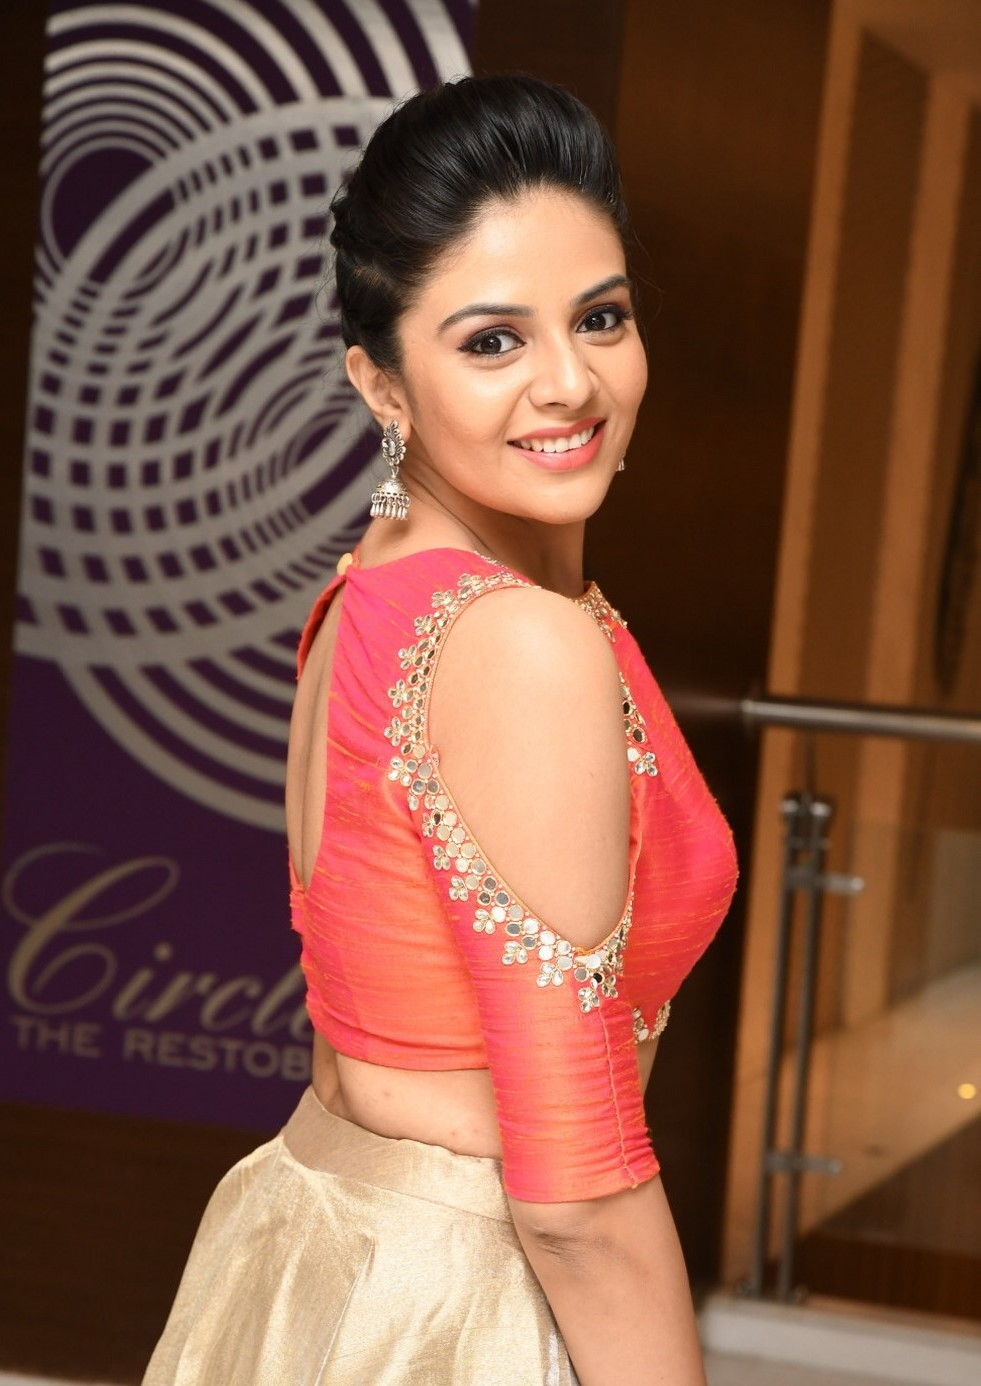 60c122922 Stunning Sreemukhi in a Peach and Golden Outfit - FashionPro